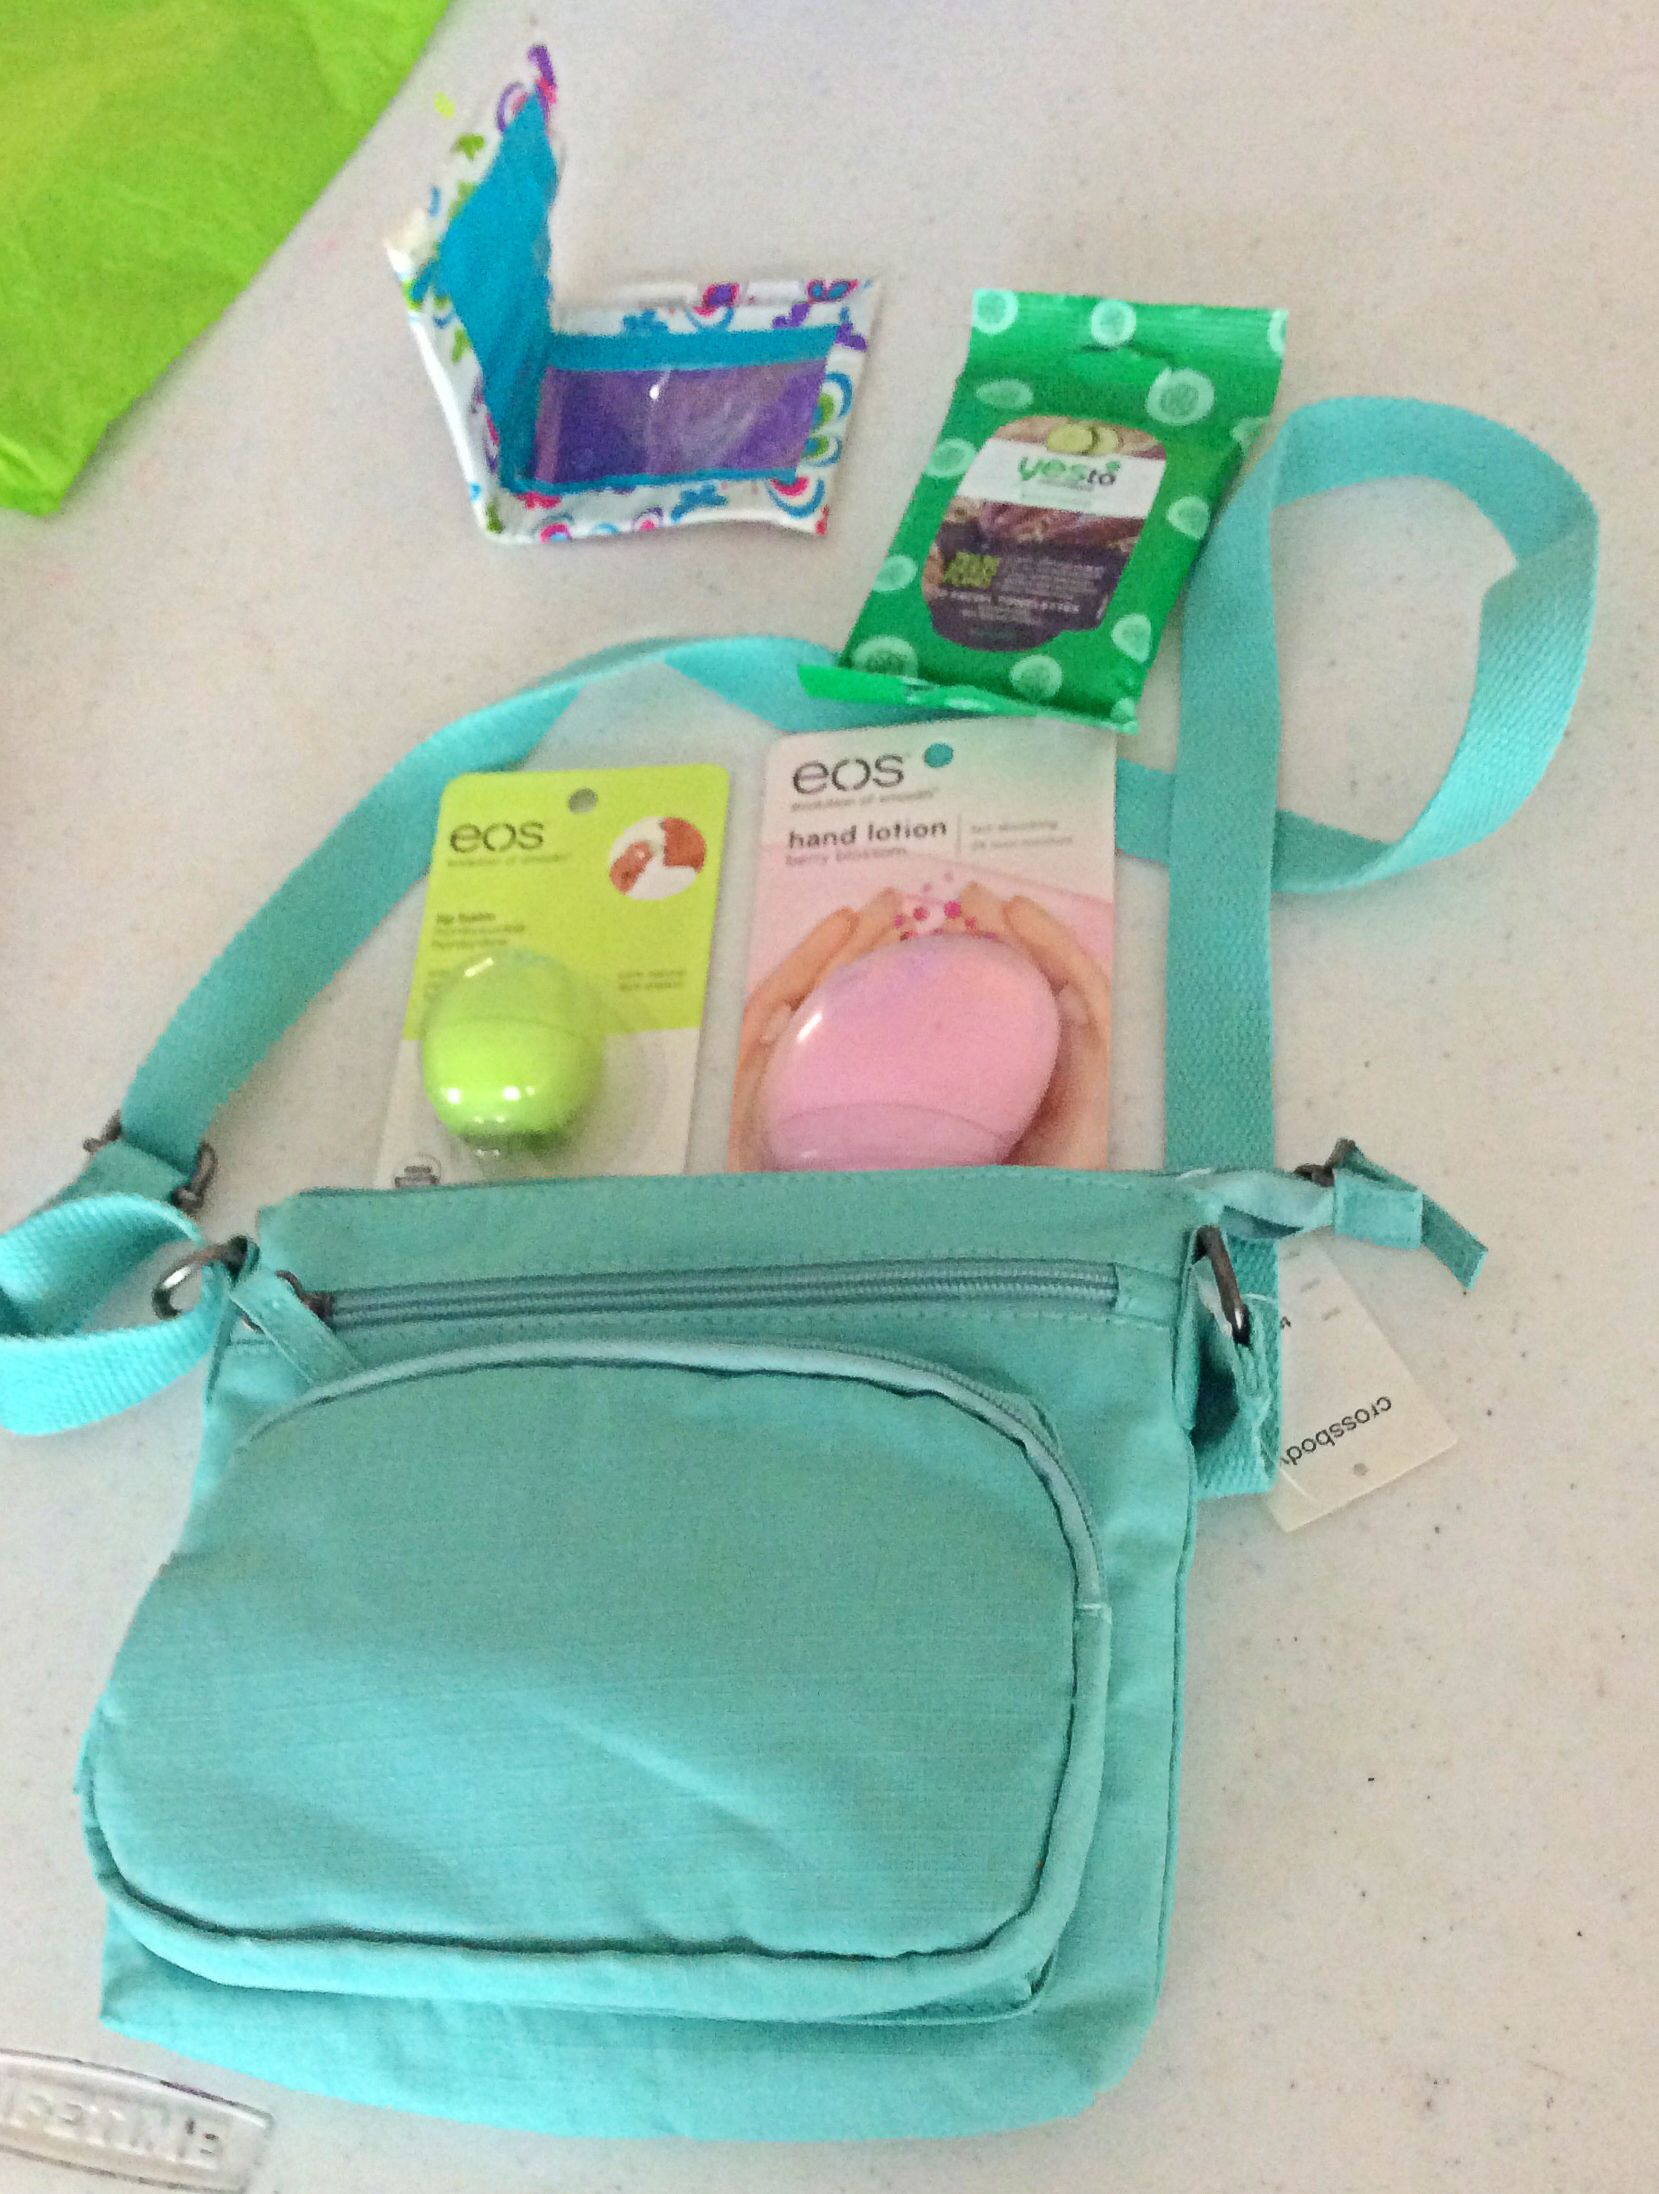 Teen Birthday Gift DIY Gifts For Girls Target Purse 10 DIY Duct